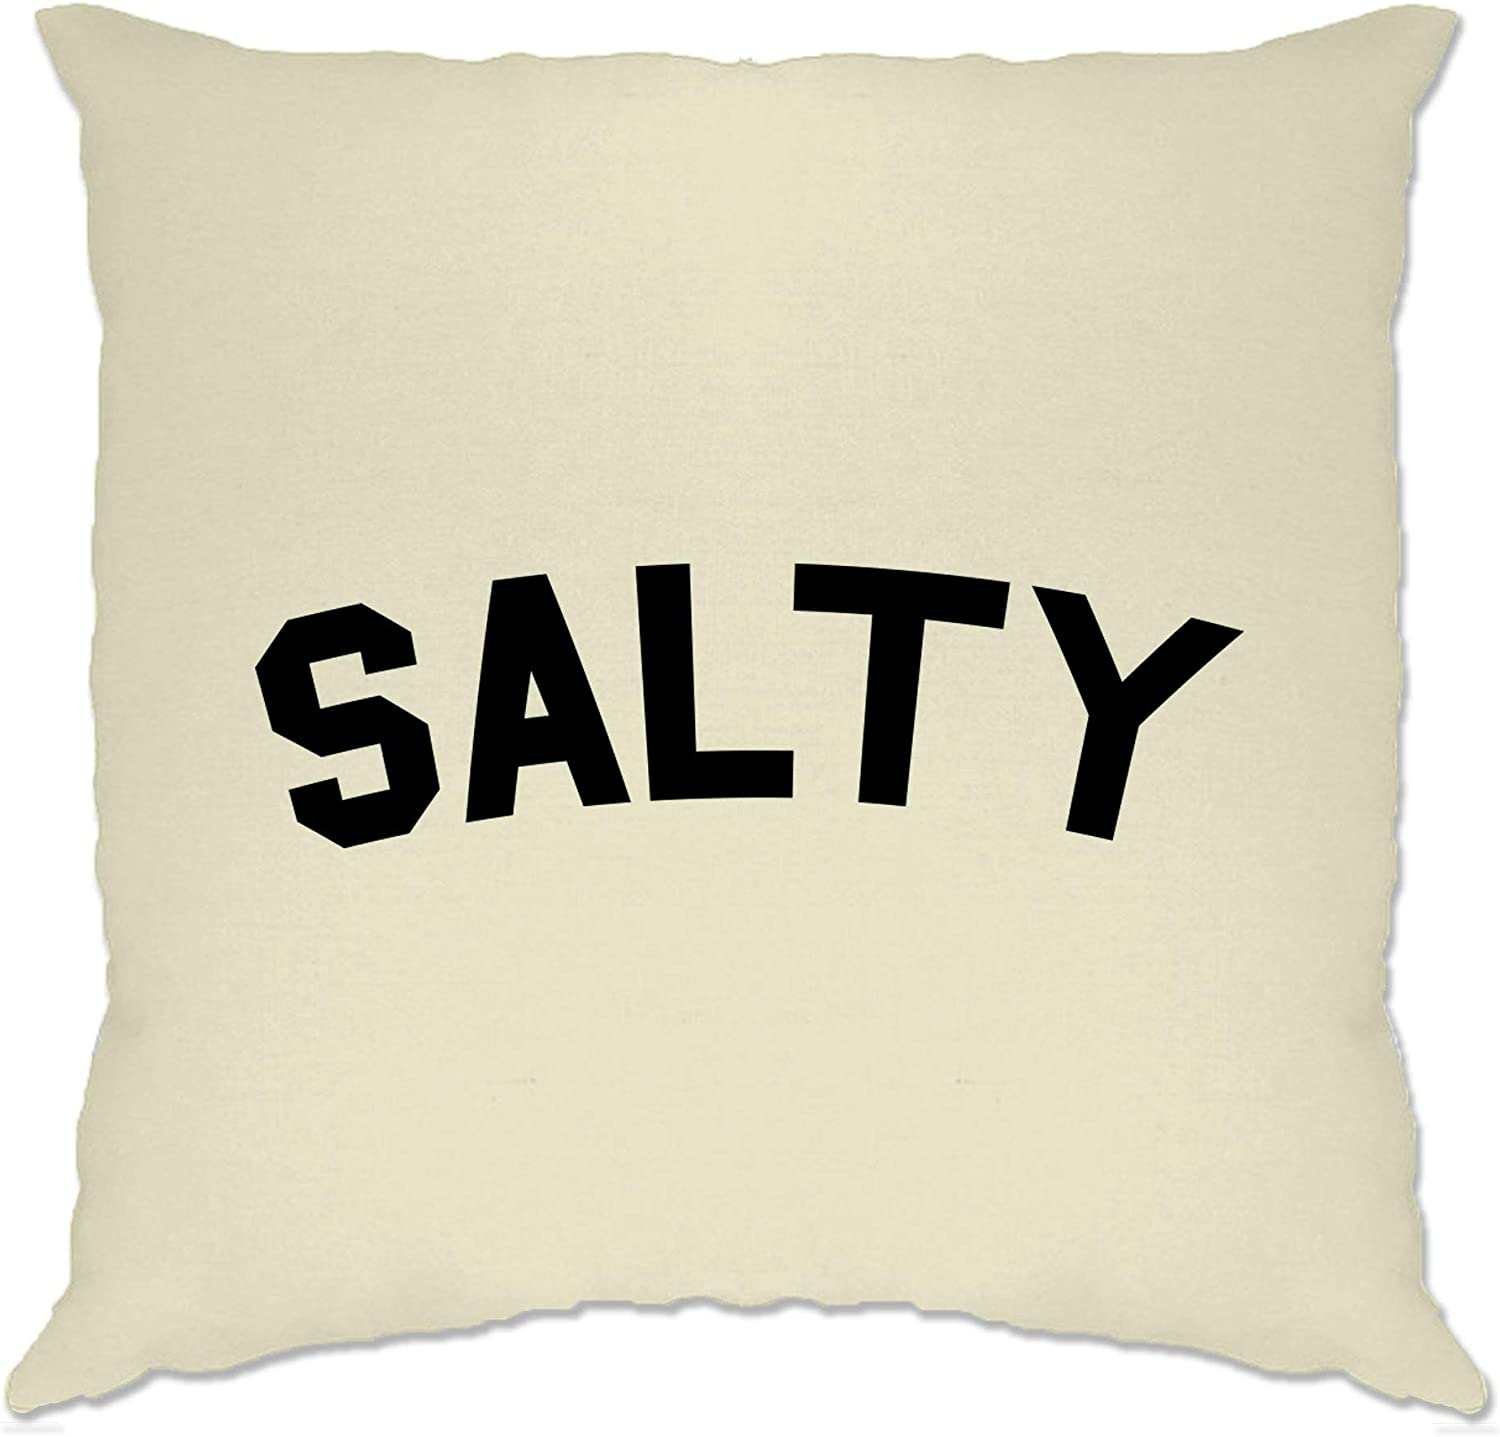 Natural//One Size Tim And Ted Novelty Social Media Slogan Cushion Cover Salty Beef Joke Sassy Rude Trendy